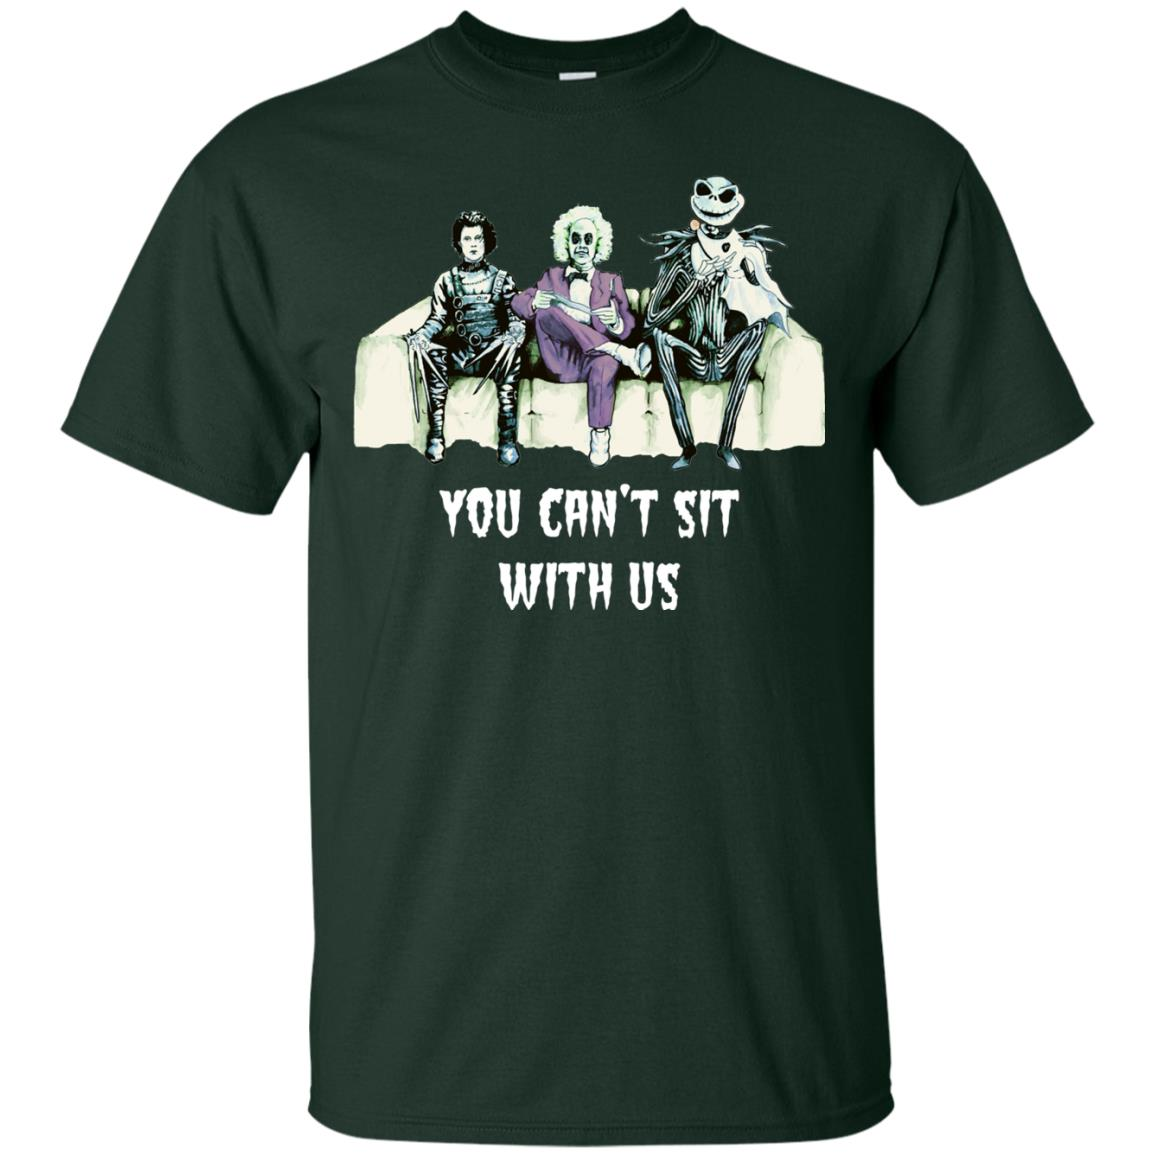 image 1275px Beetlejuice, Edward, Jack: You can't sit with us t shirt, hoodies, tank top